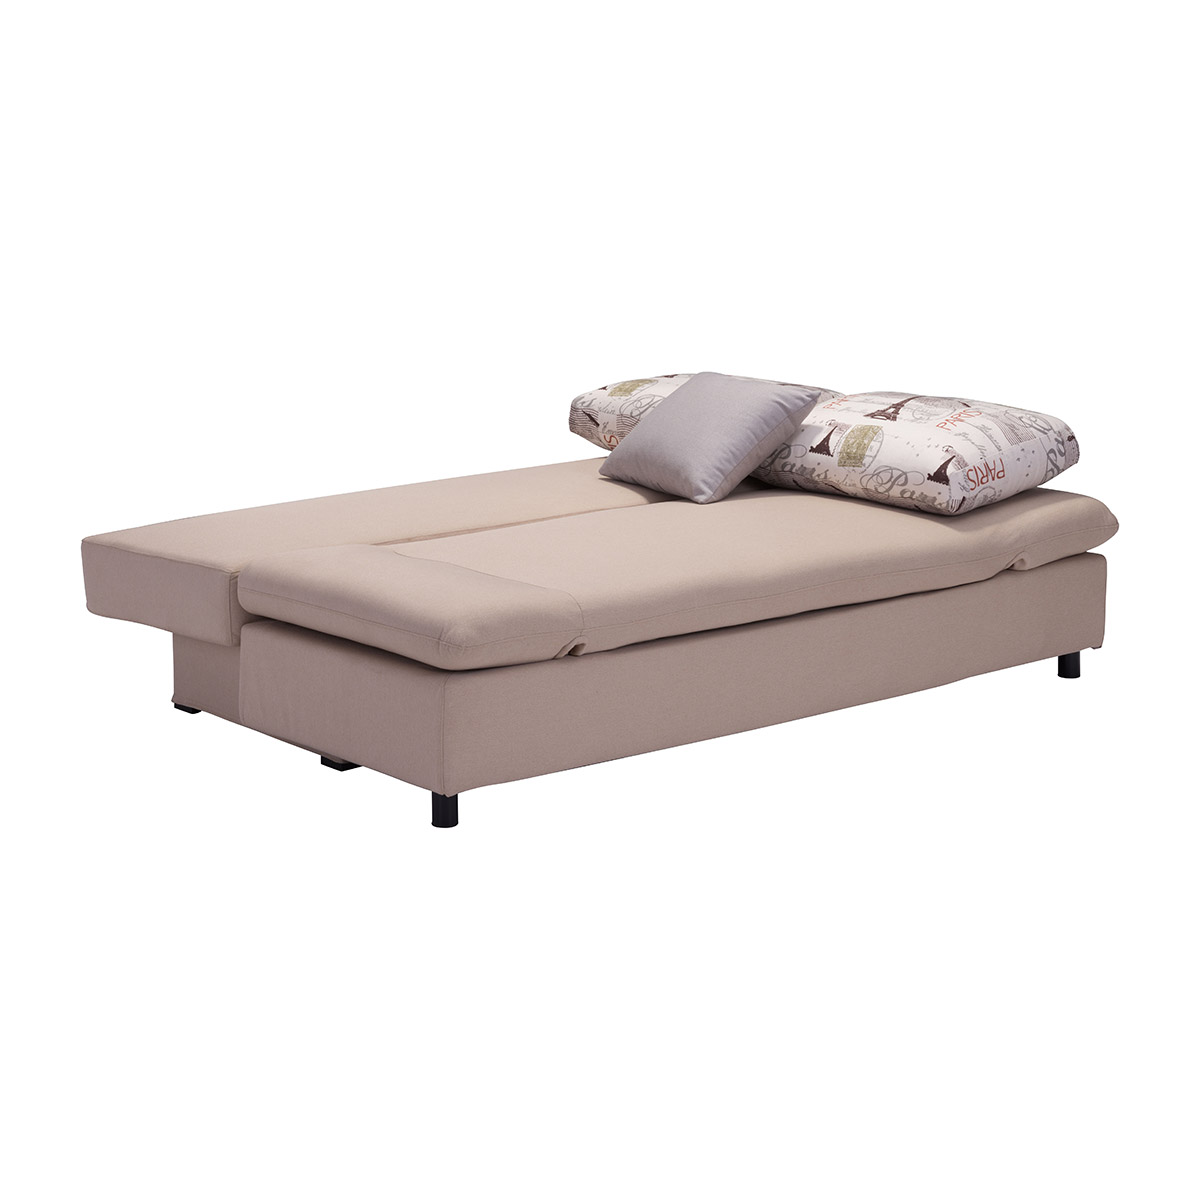 beige sleeper sofa bluebell chaise zuo serenity in boost home